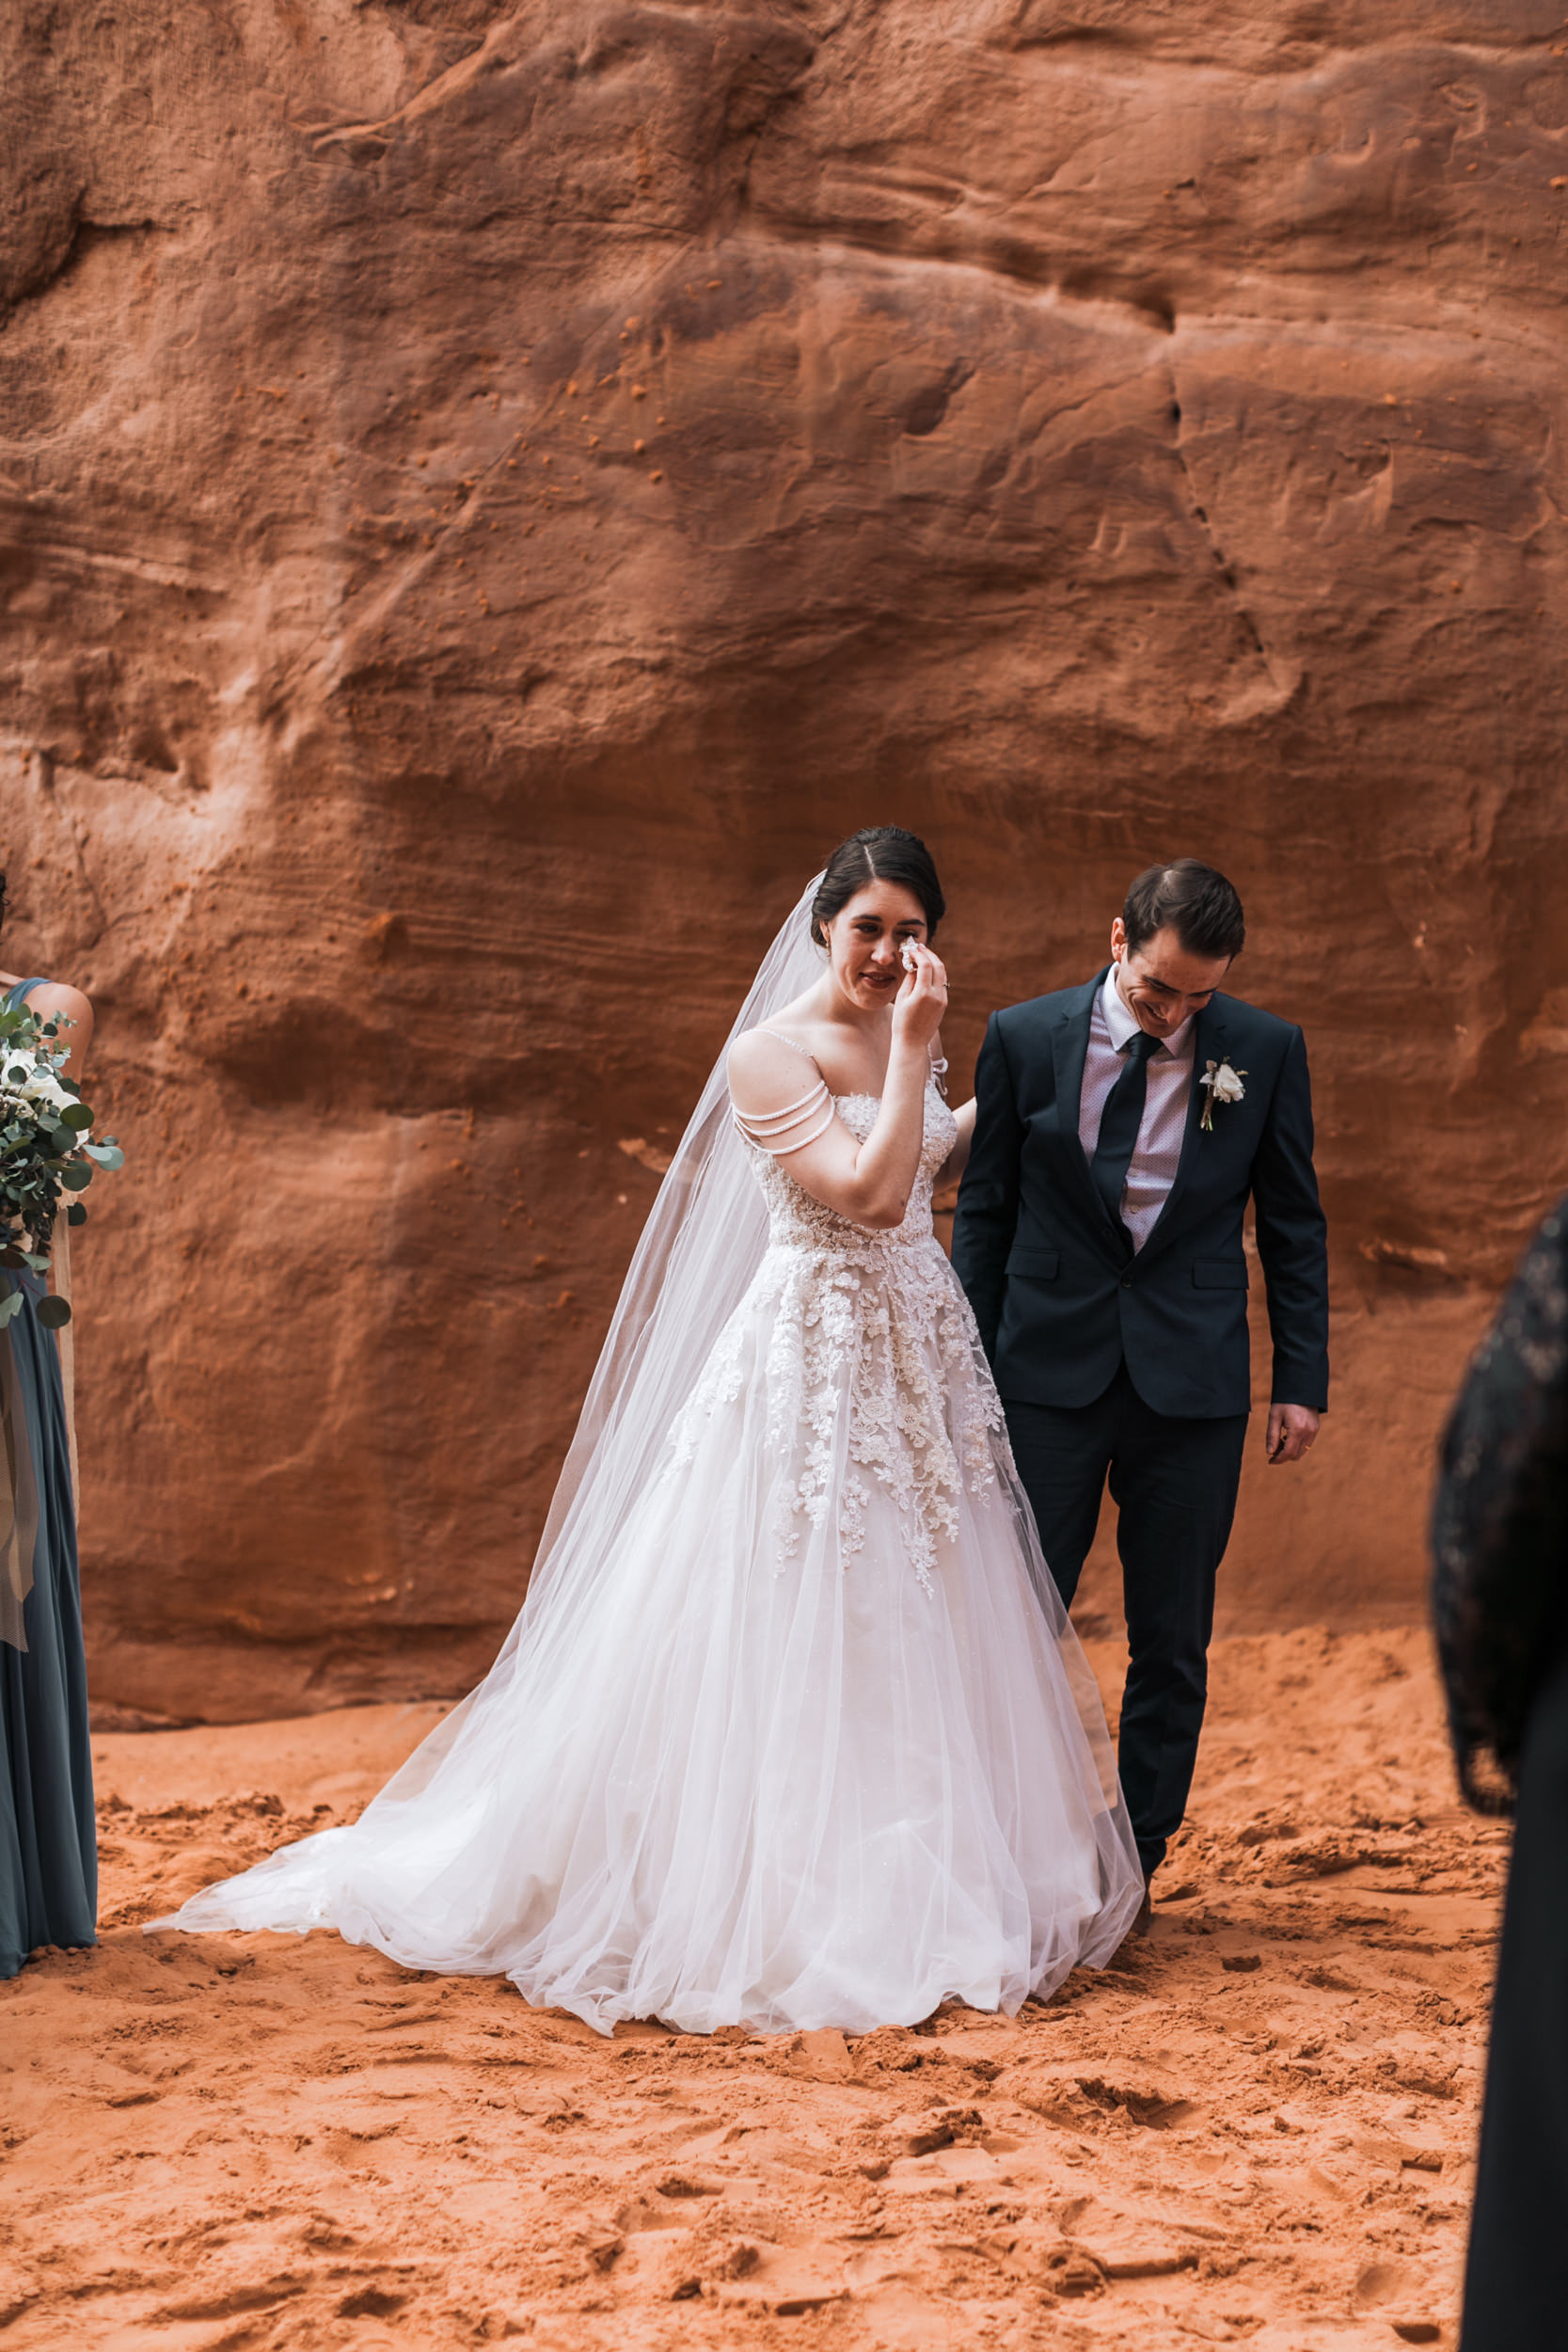 Claire teared up a little as they walked down the aisle after their elopement ceremony at Sand Dune Arch.